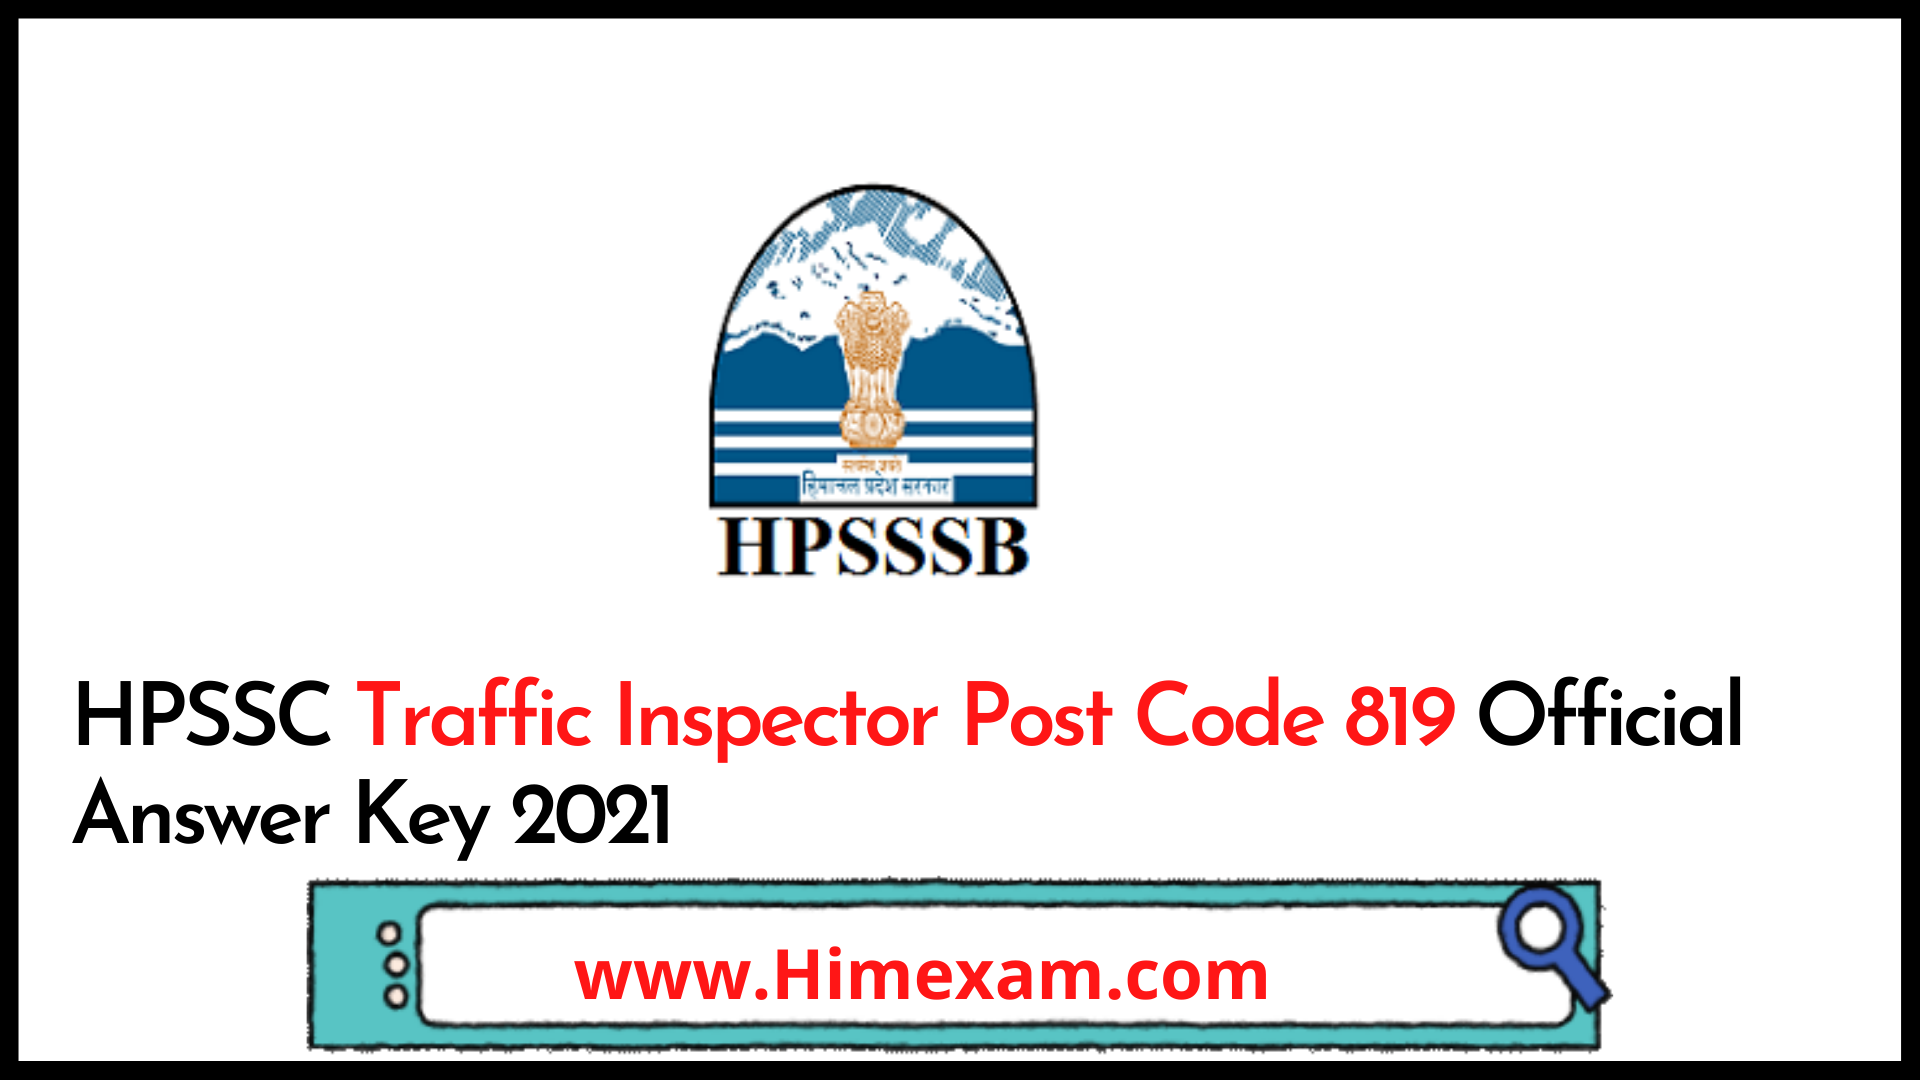 HPSSC Traffic Inspector Post Code 819 Official Answer Key 2021